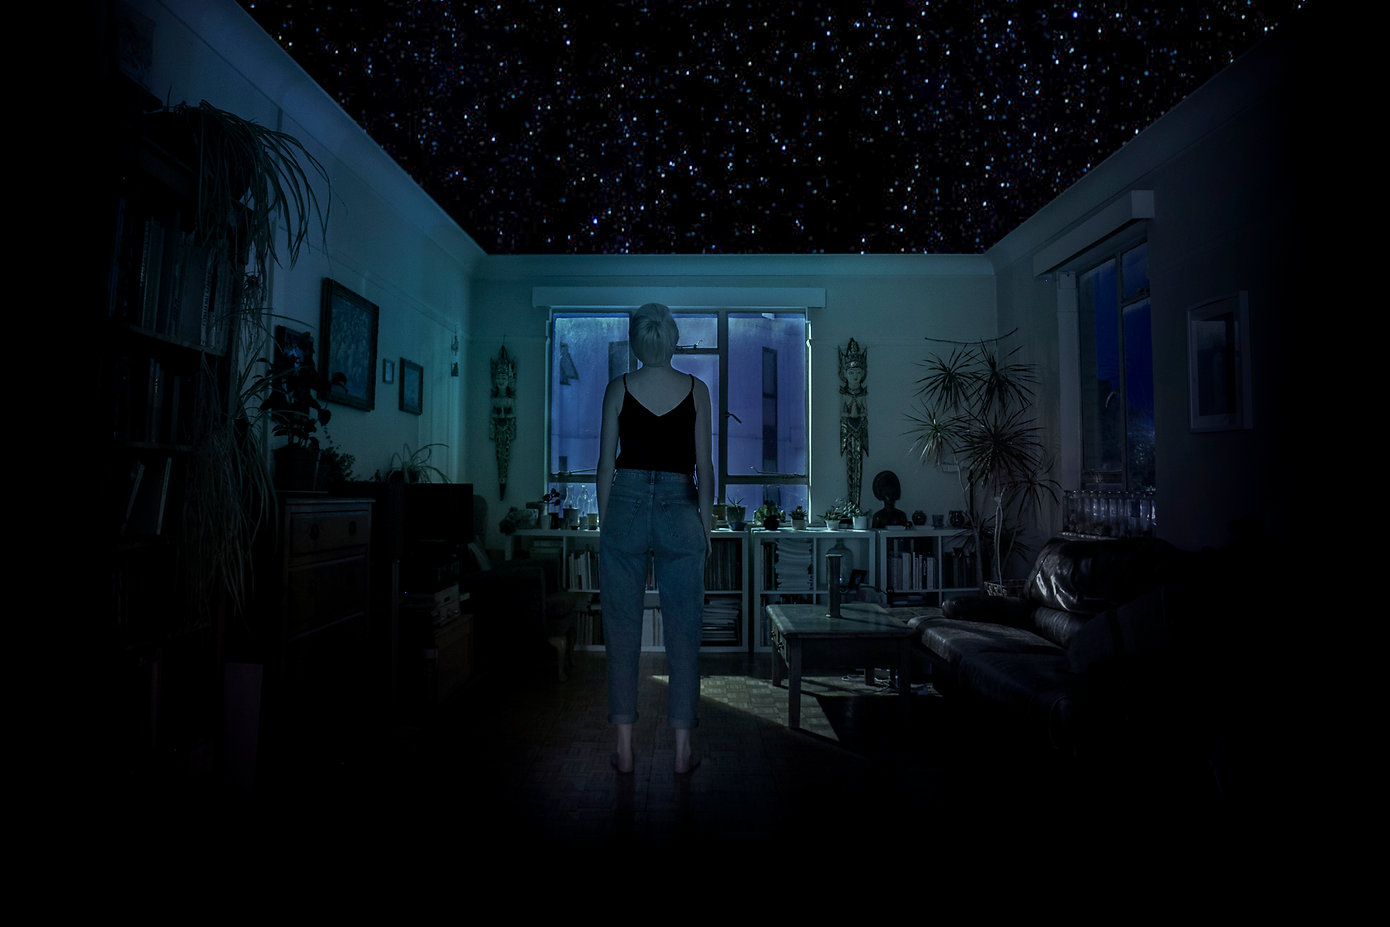 STARS_blue_without_projection_FINAL.jpg